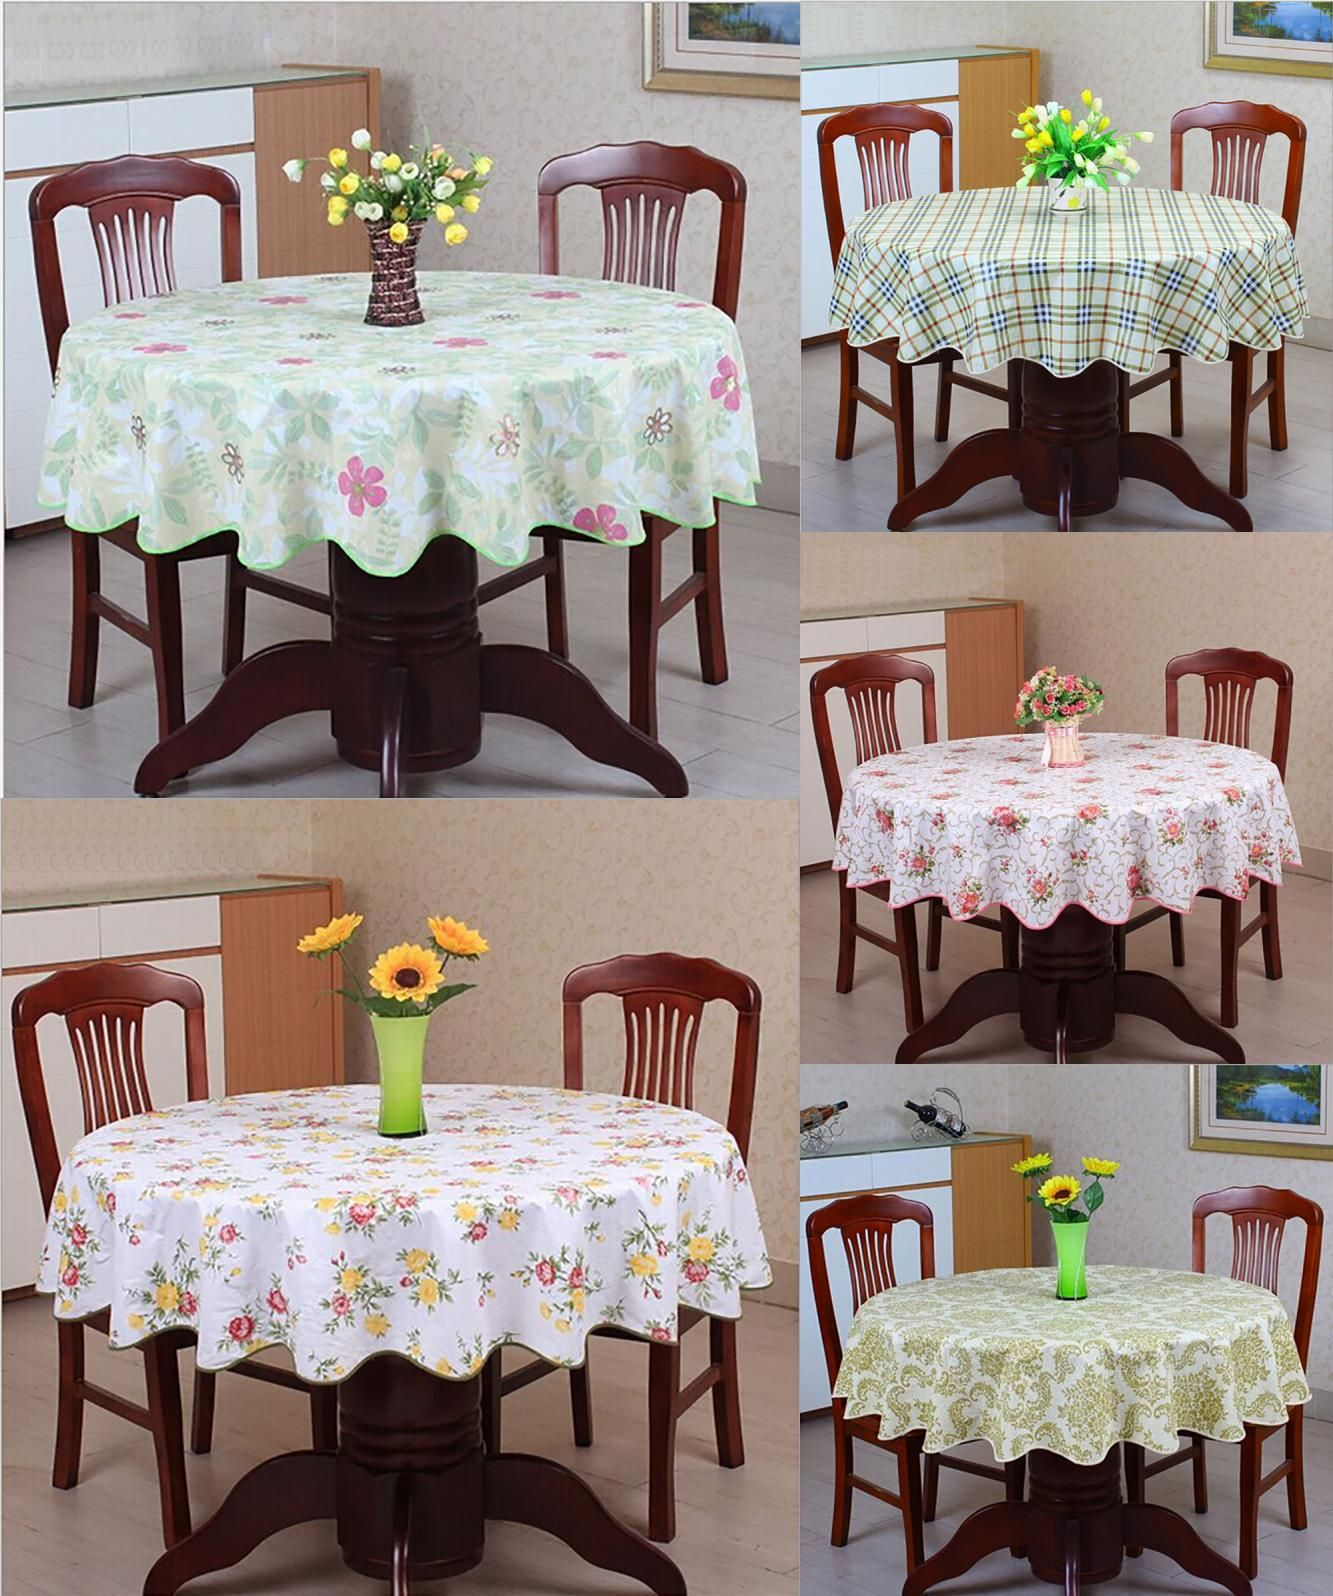 Visit To Buy Pastoral Round Table Cloth Pvc Plastic Table Cover Flowers Printed Tablecloth Waterproof Home Part Plastic Table Covers Table Covers Table Cloth